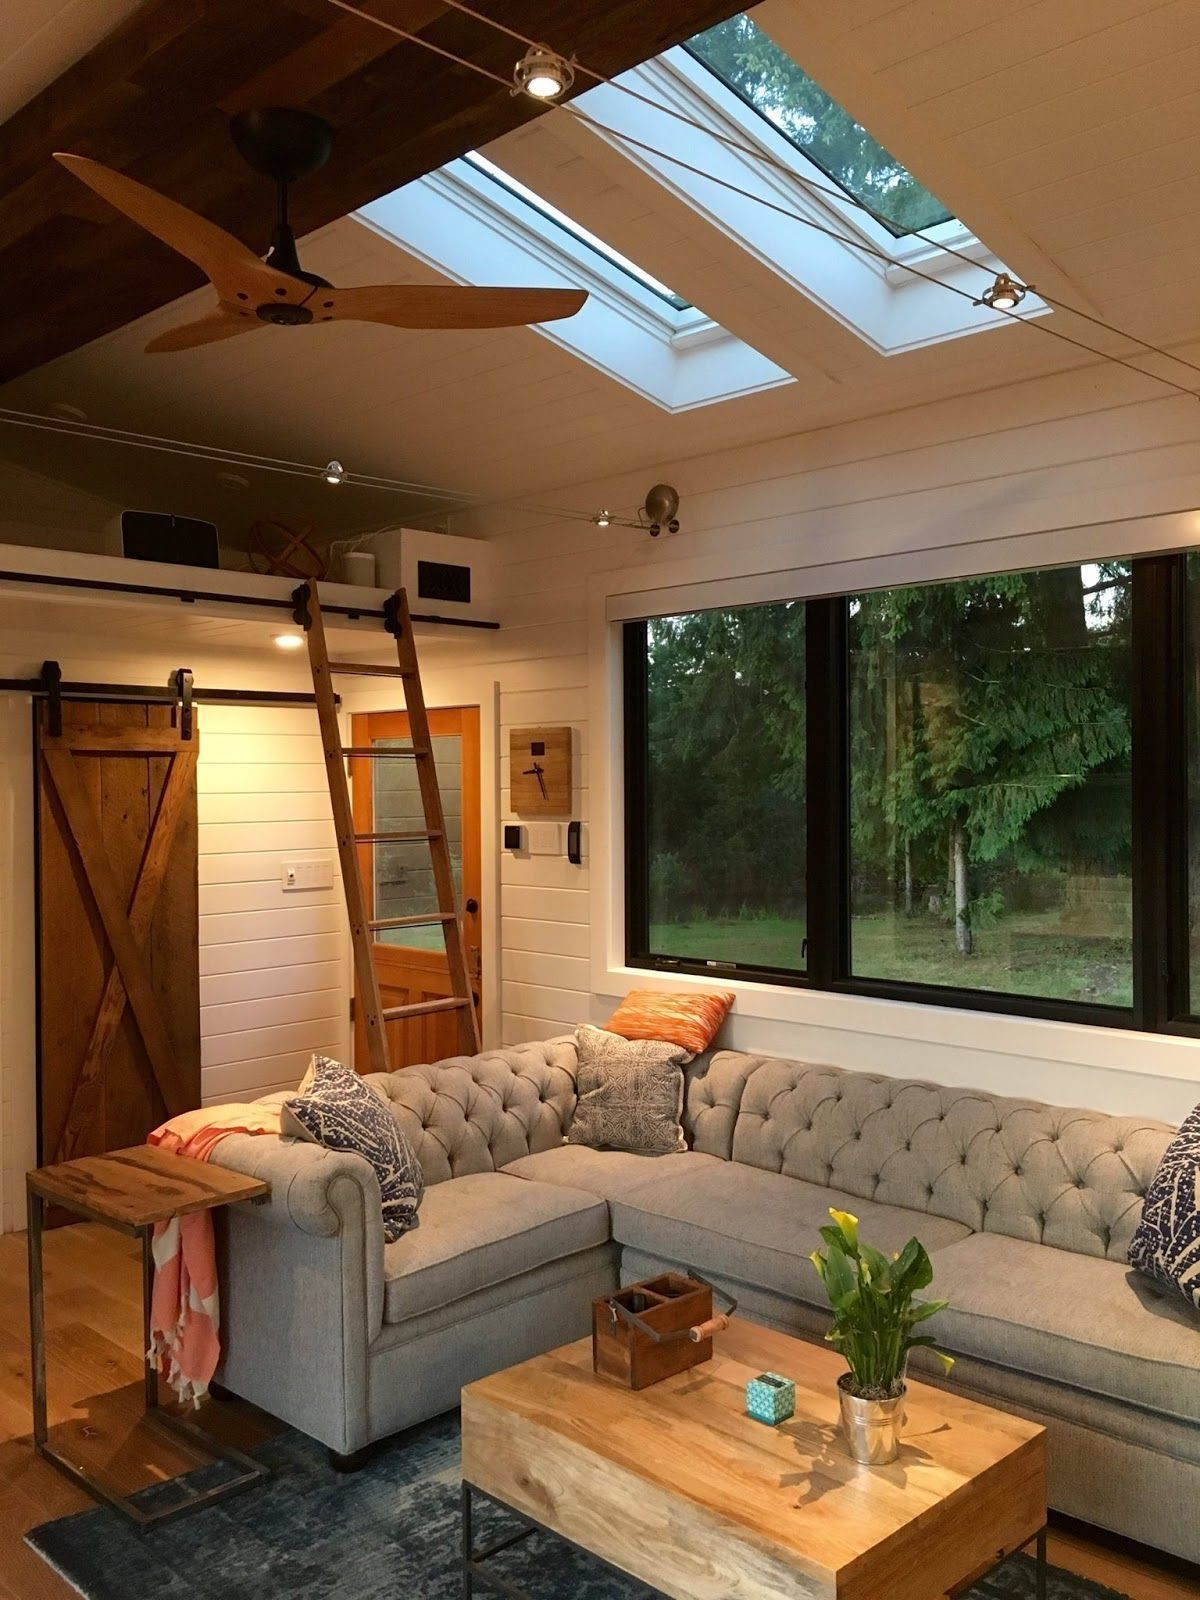 cool tiny house design ideas to inspire you diy home decor also rh pinterest